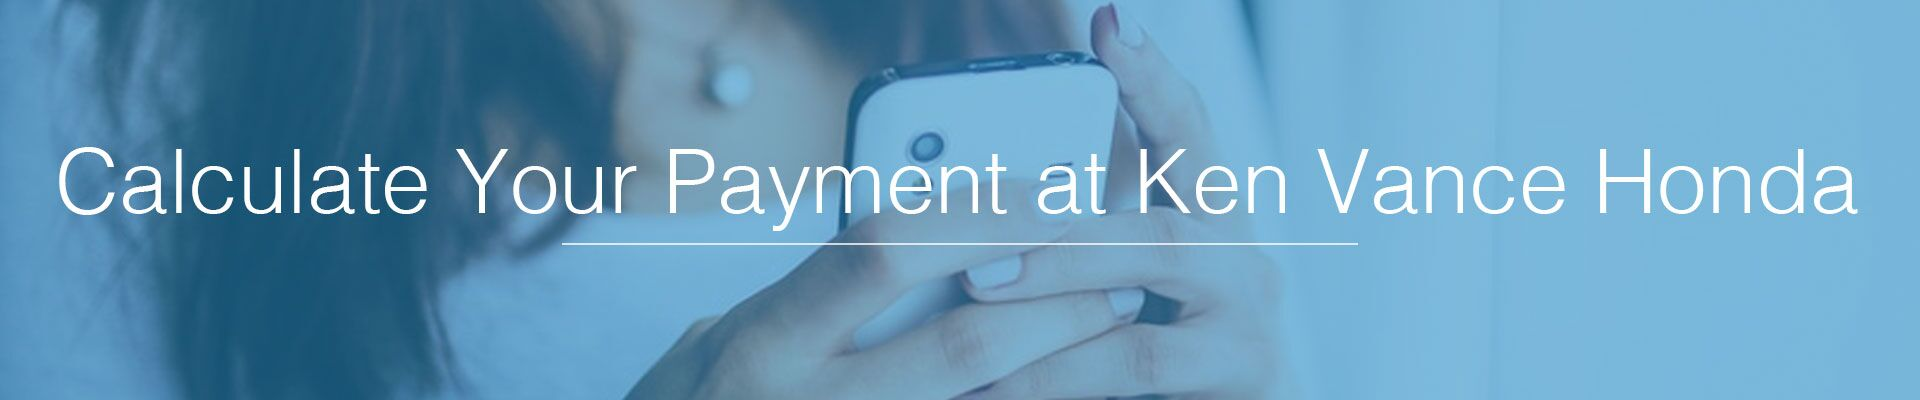 Calculate Your Payment at Ken Vance Honda